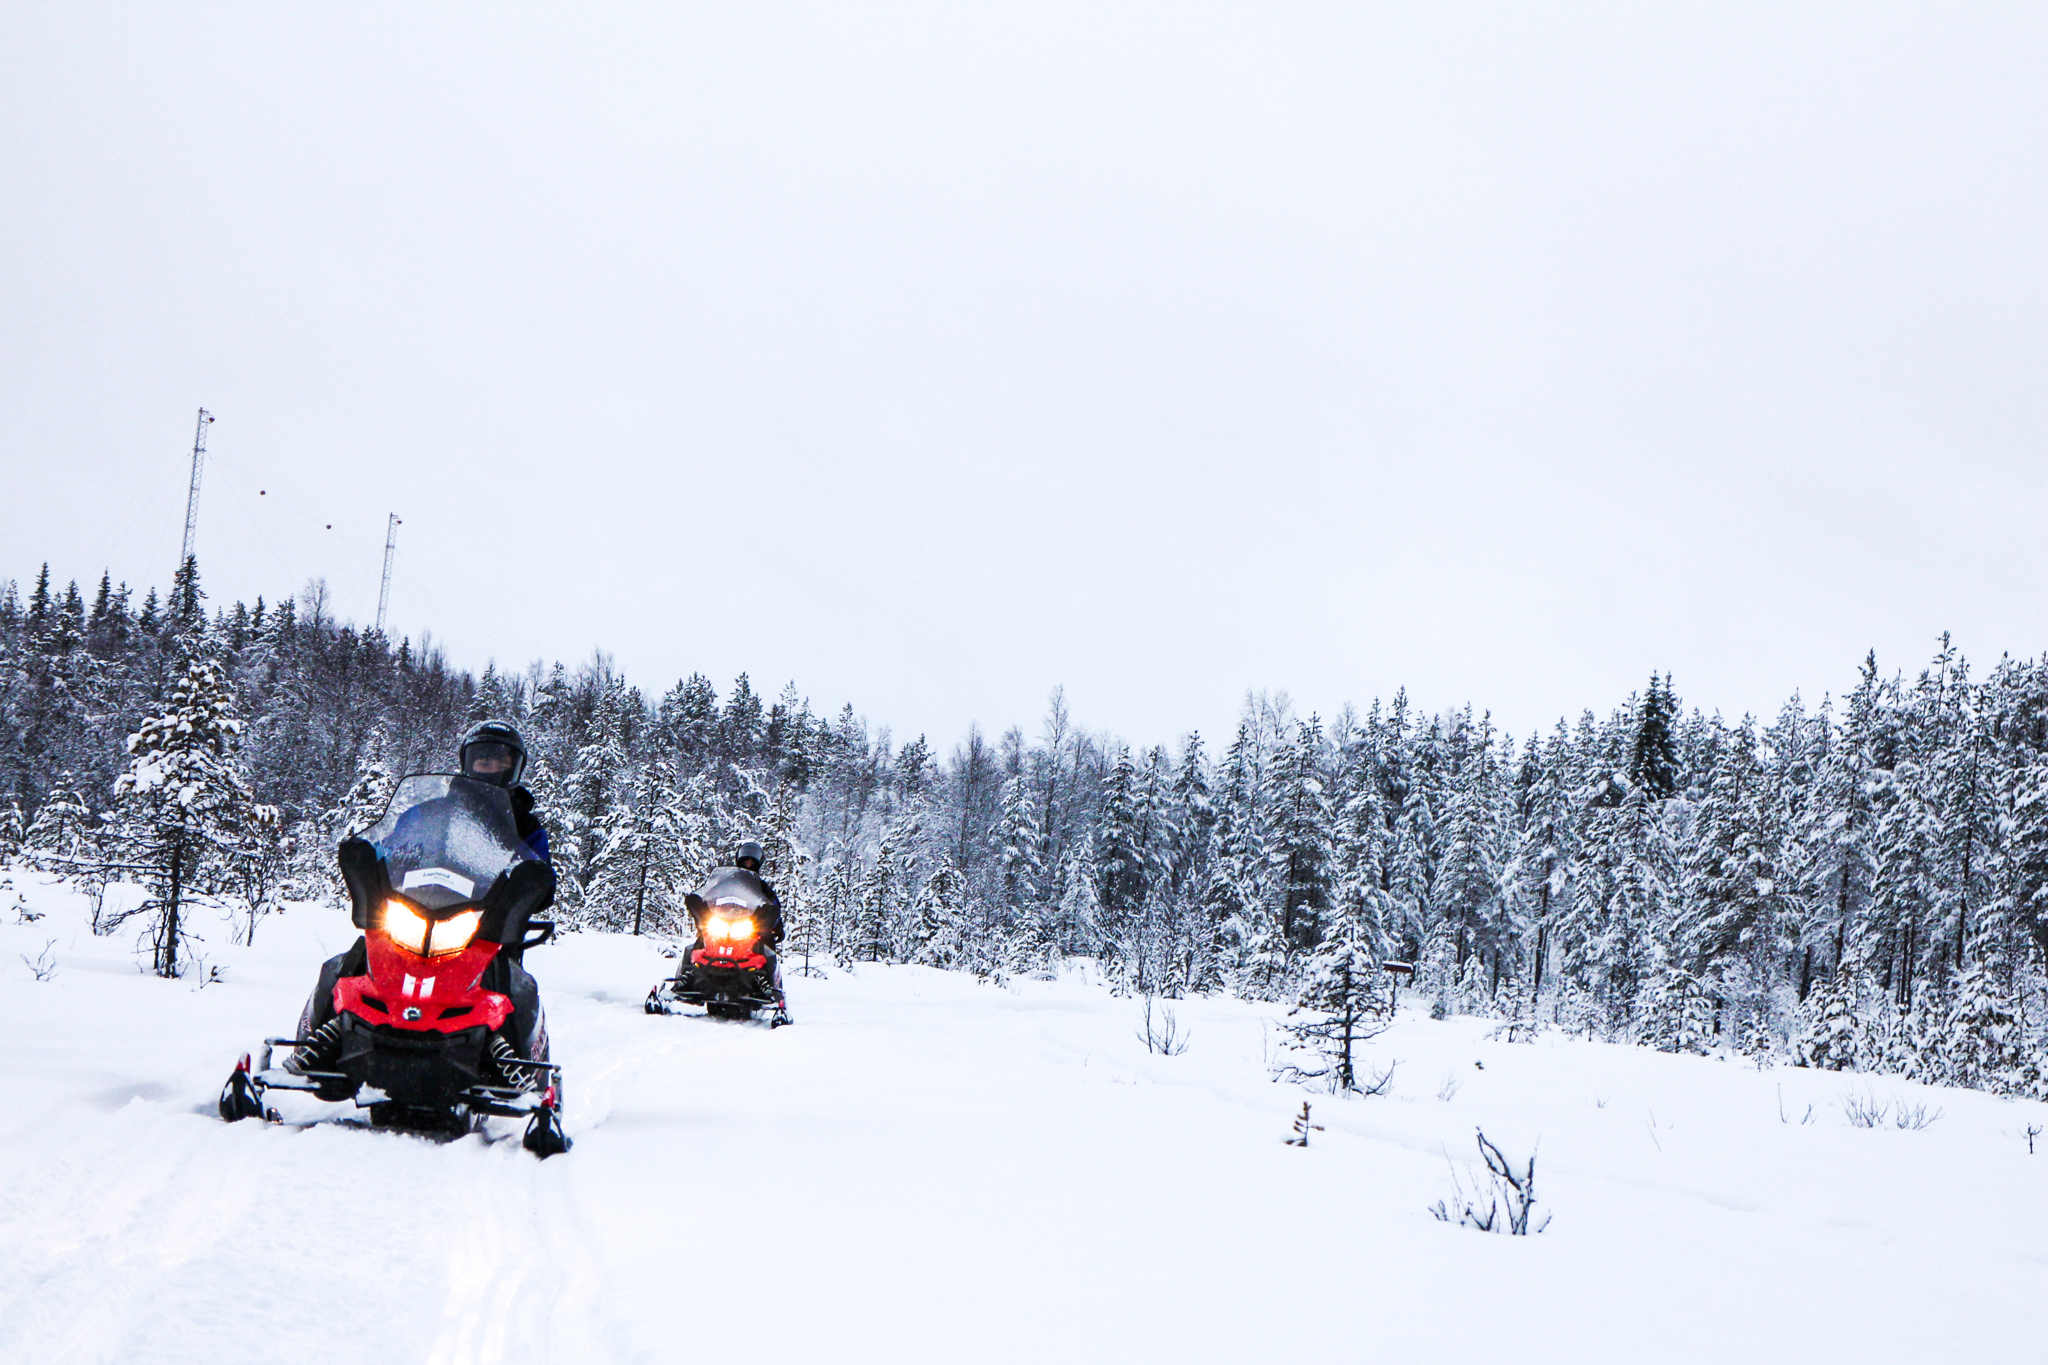 two people driving snowmobiles in snowy forest